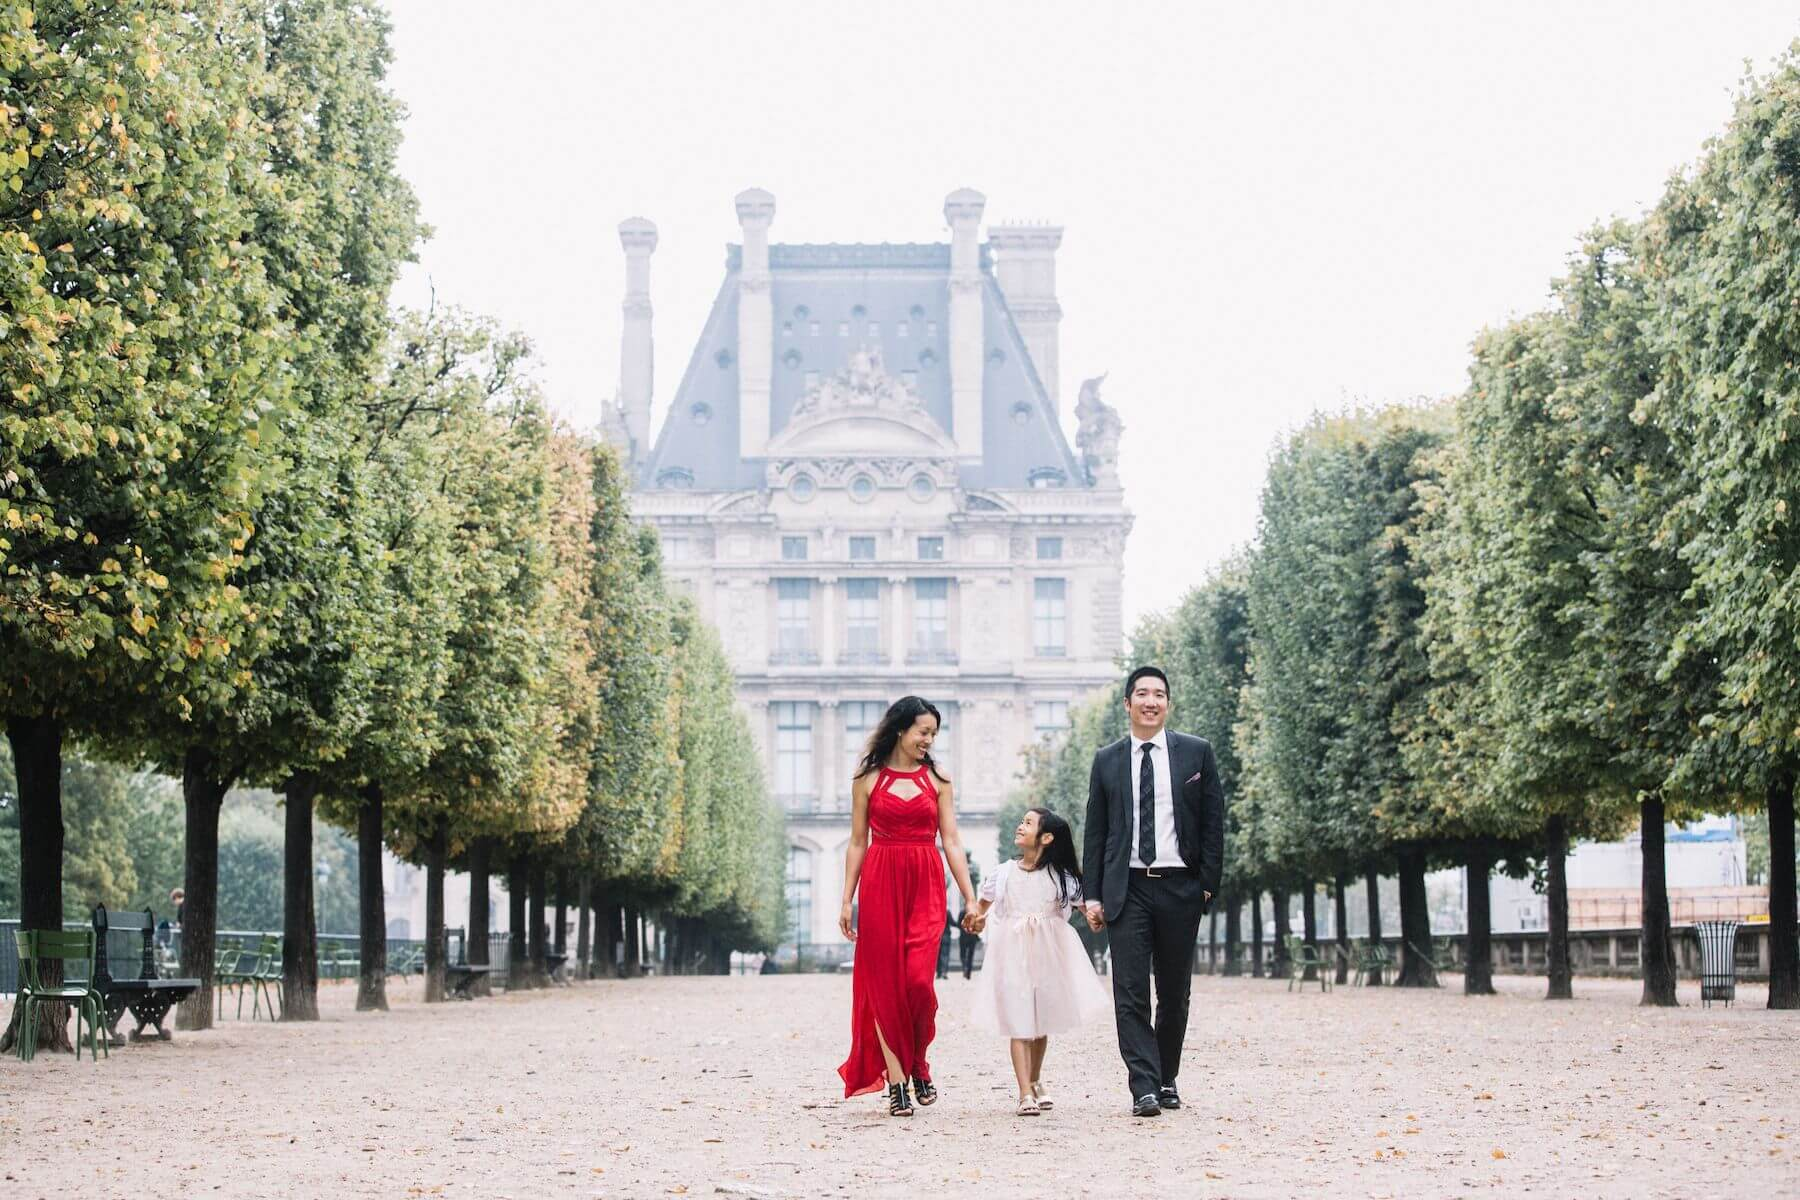 a family of three holding hands and walking in the gardens near the Louvre in Paris, France